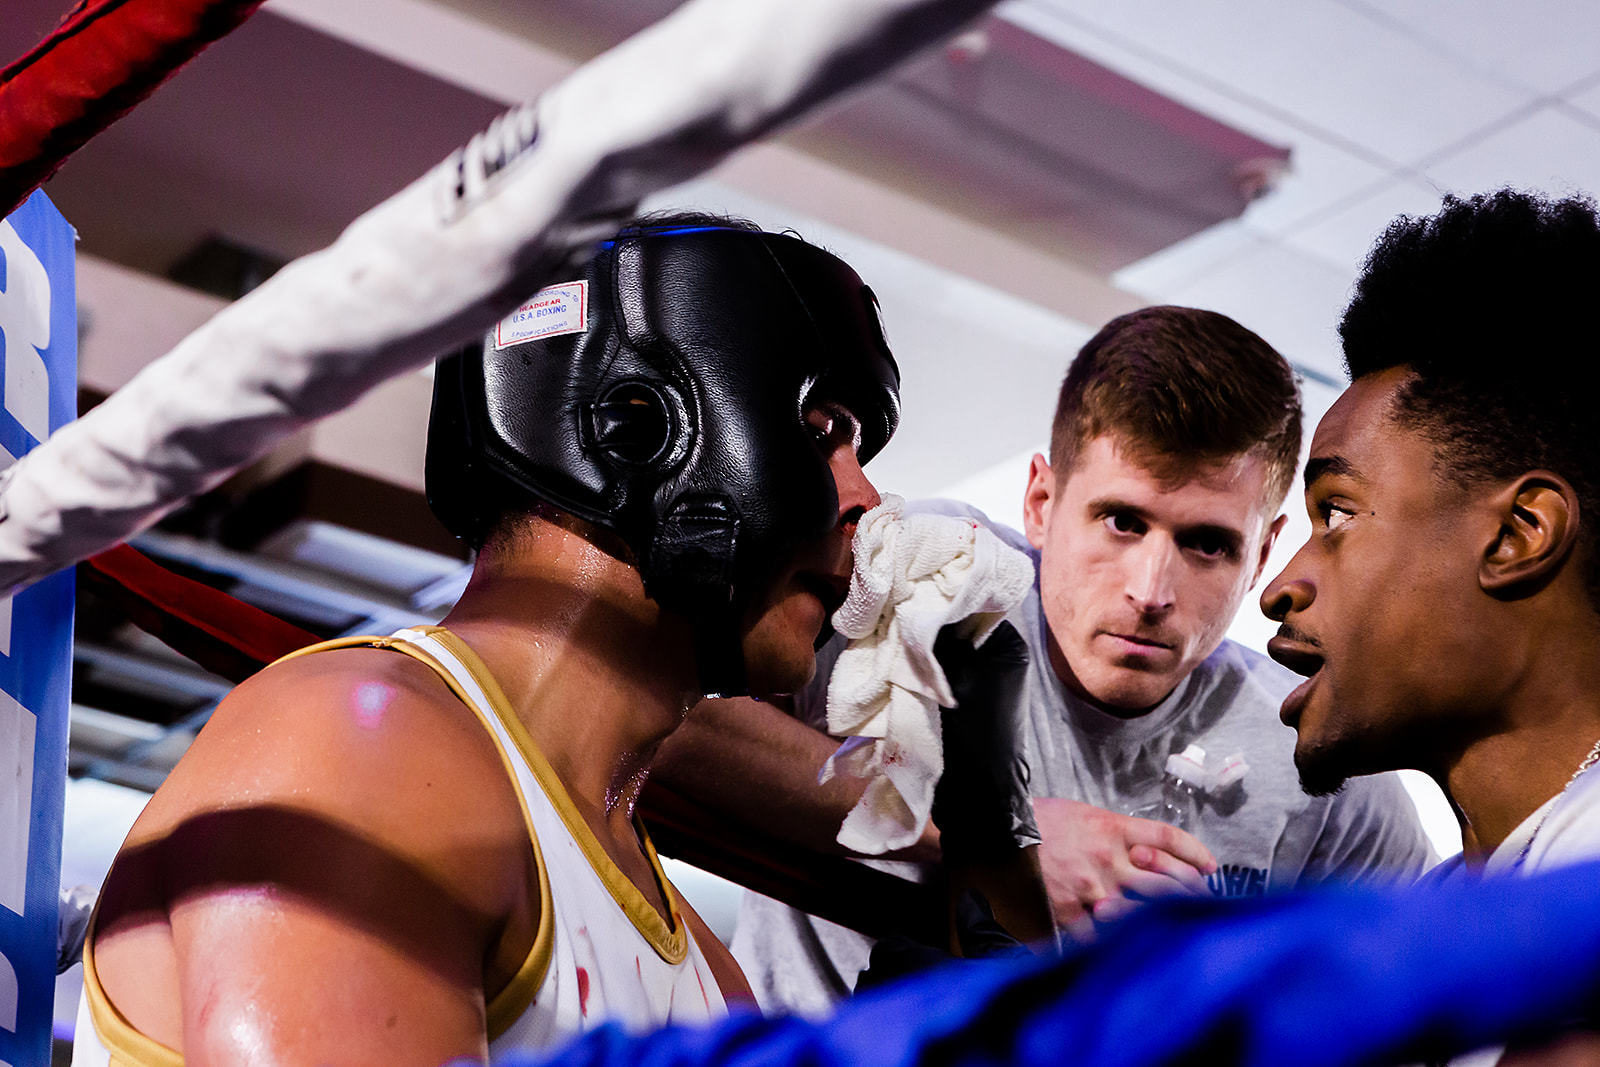 Scott O'Neil having discussion with coaches during charity boxing match